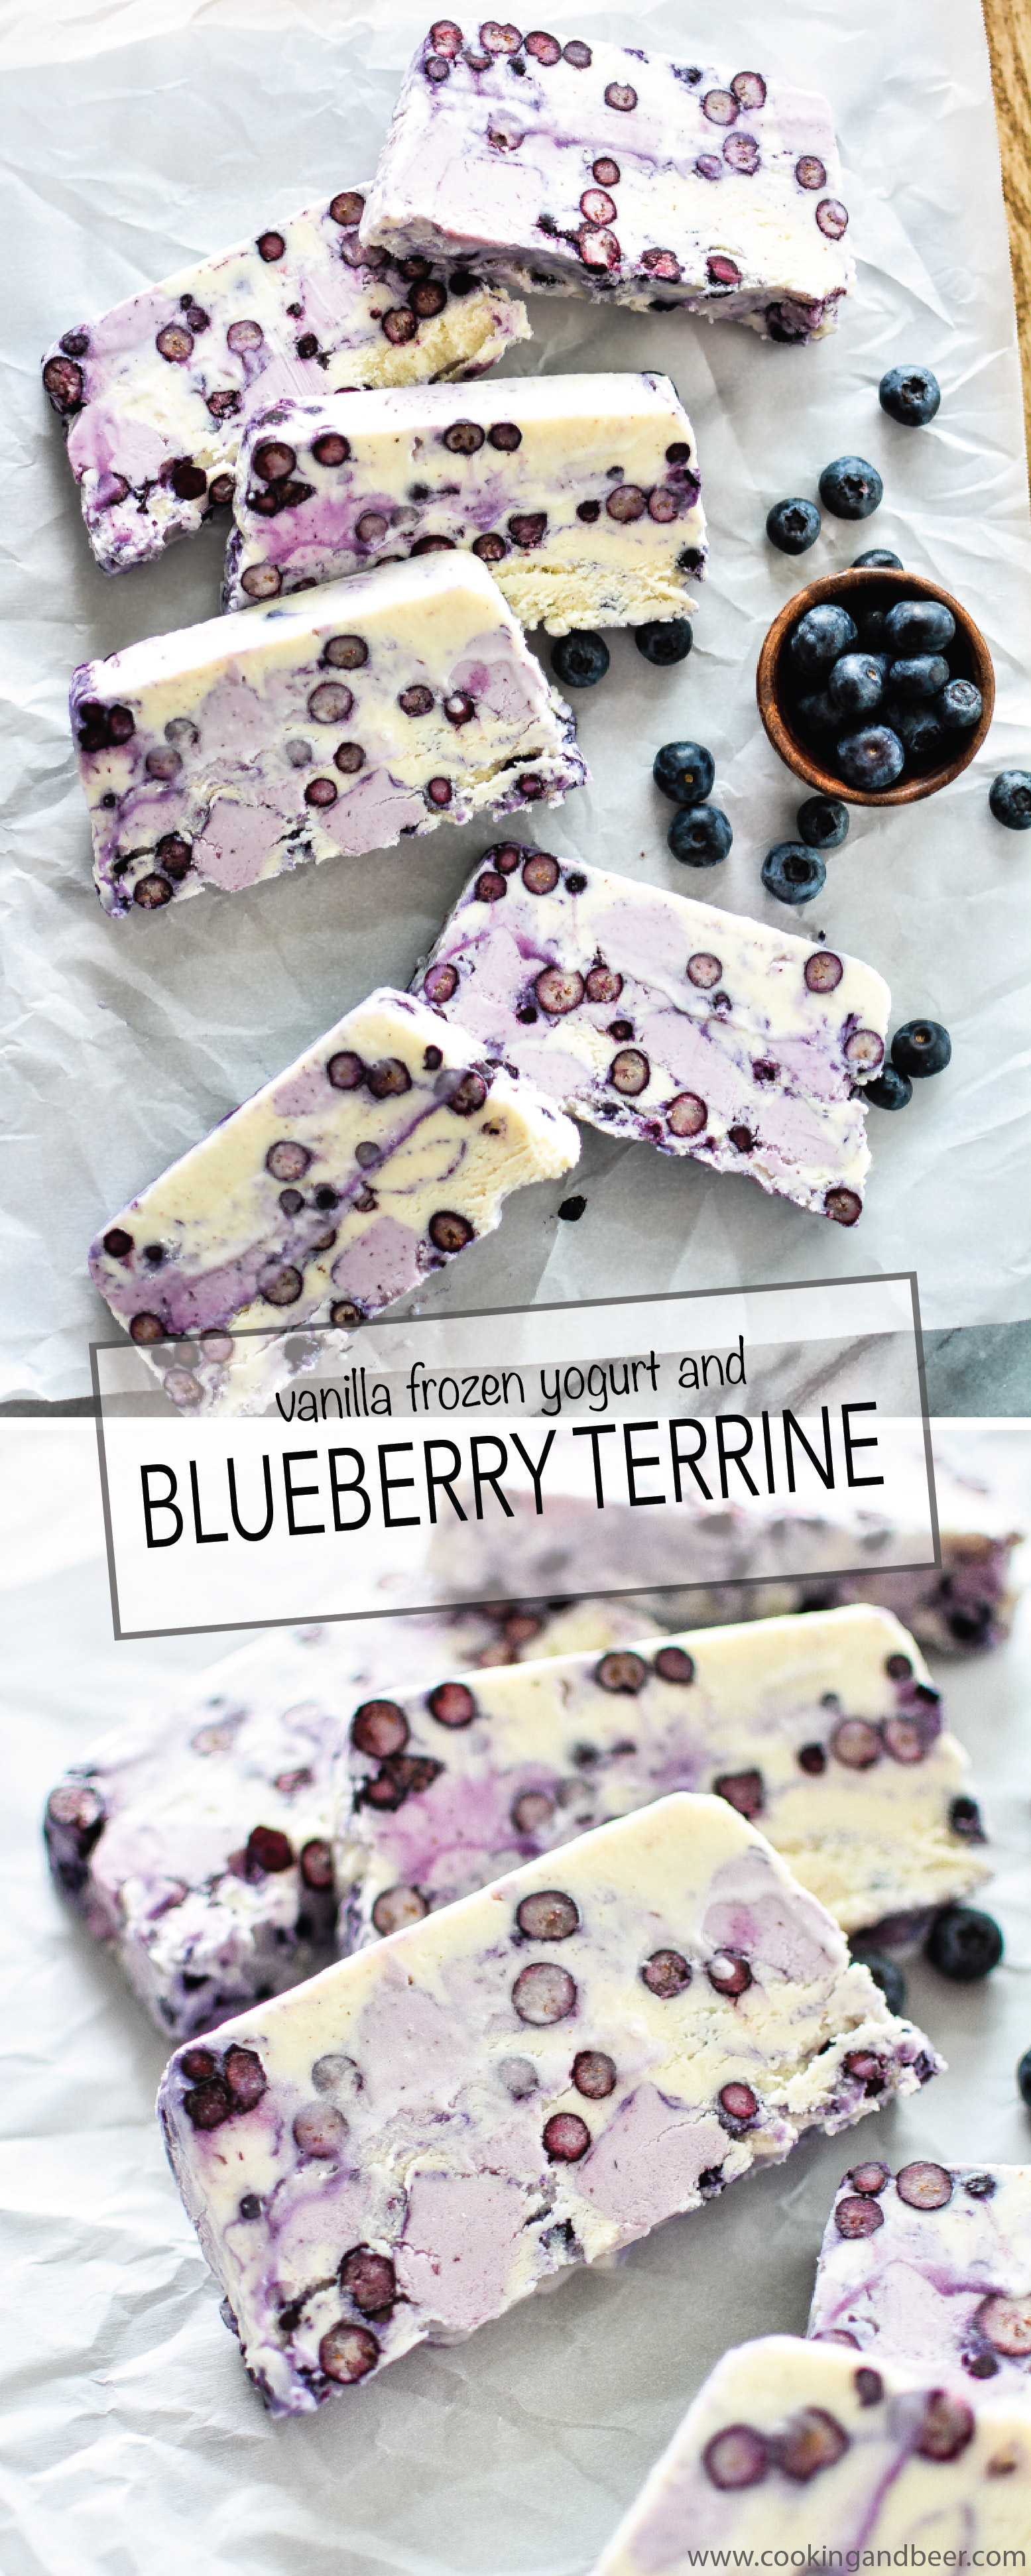 Vanilla Frozen Yogurt and Blueberry Terrine is the dessert recipe you NEED to serve this summer! | www.cookingandbeer.com